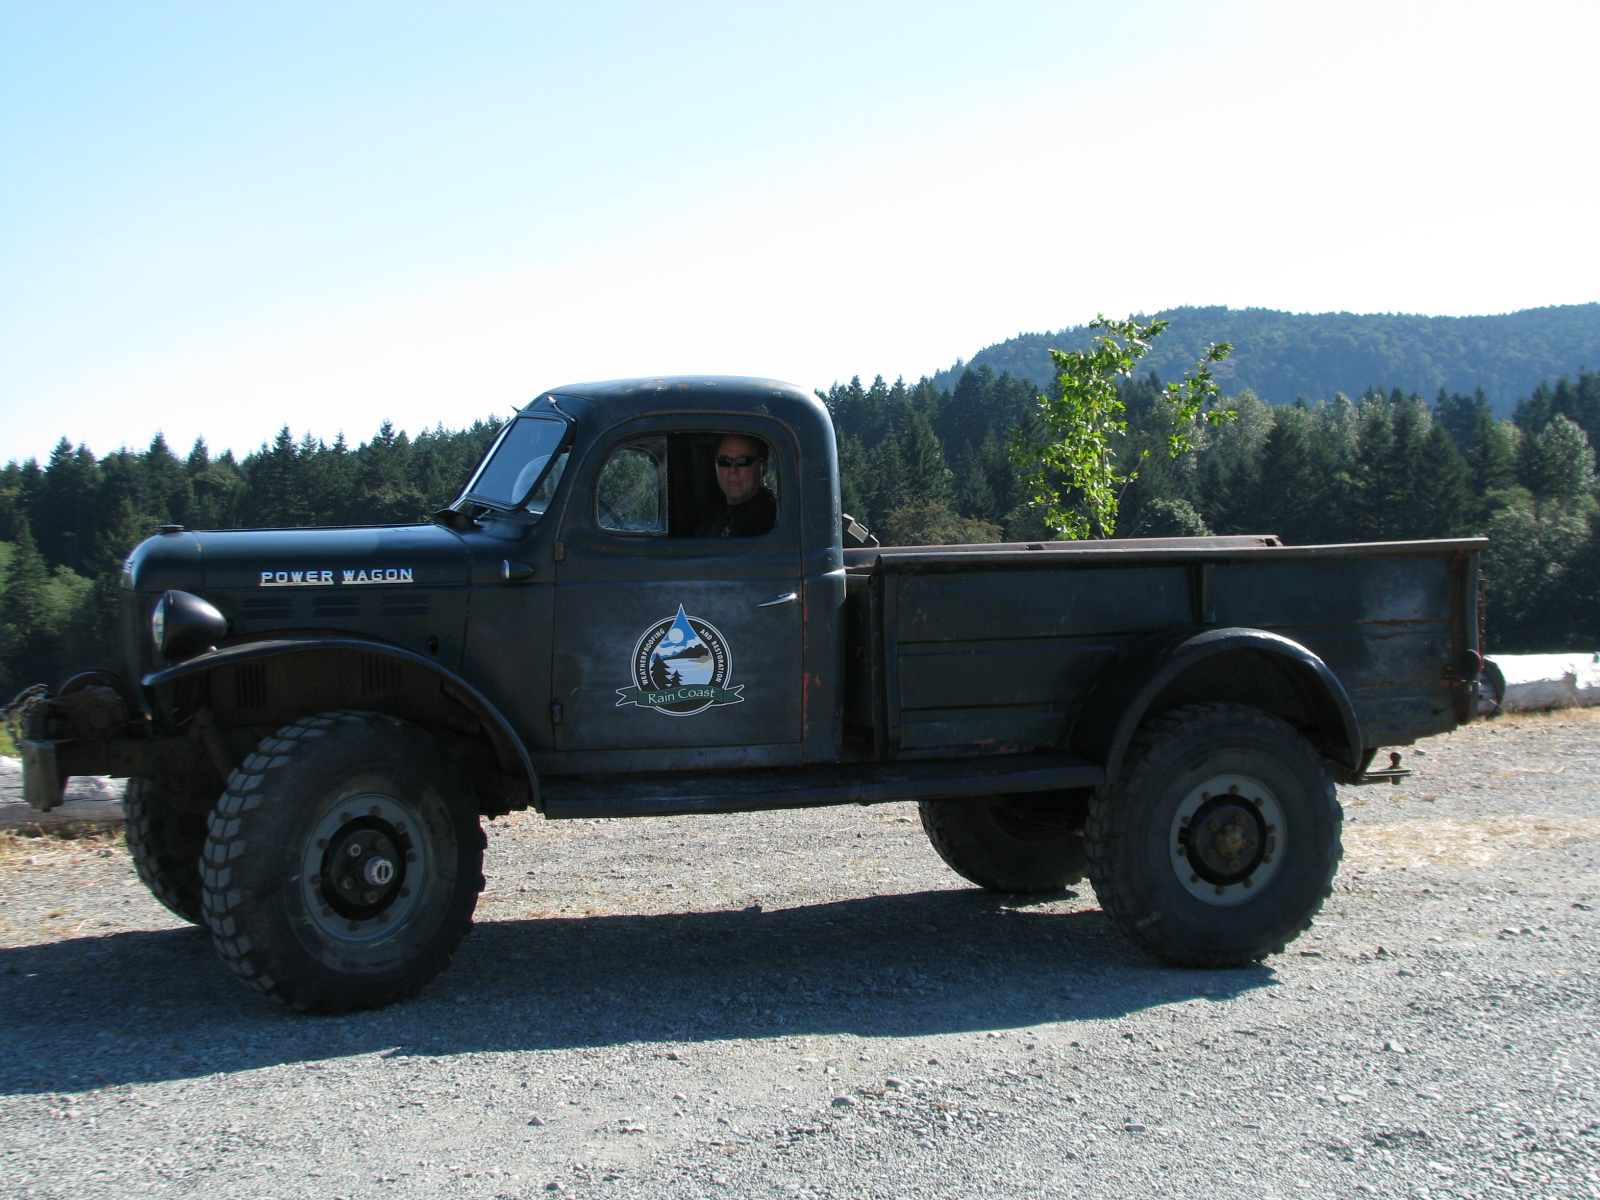 1954 Dodge Powerwagon Aths Vancouver Island Chapter Pickup Truck